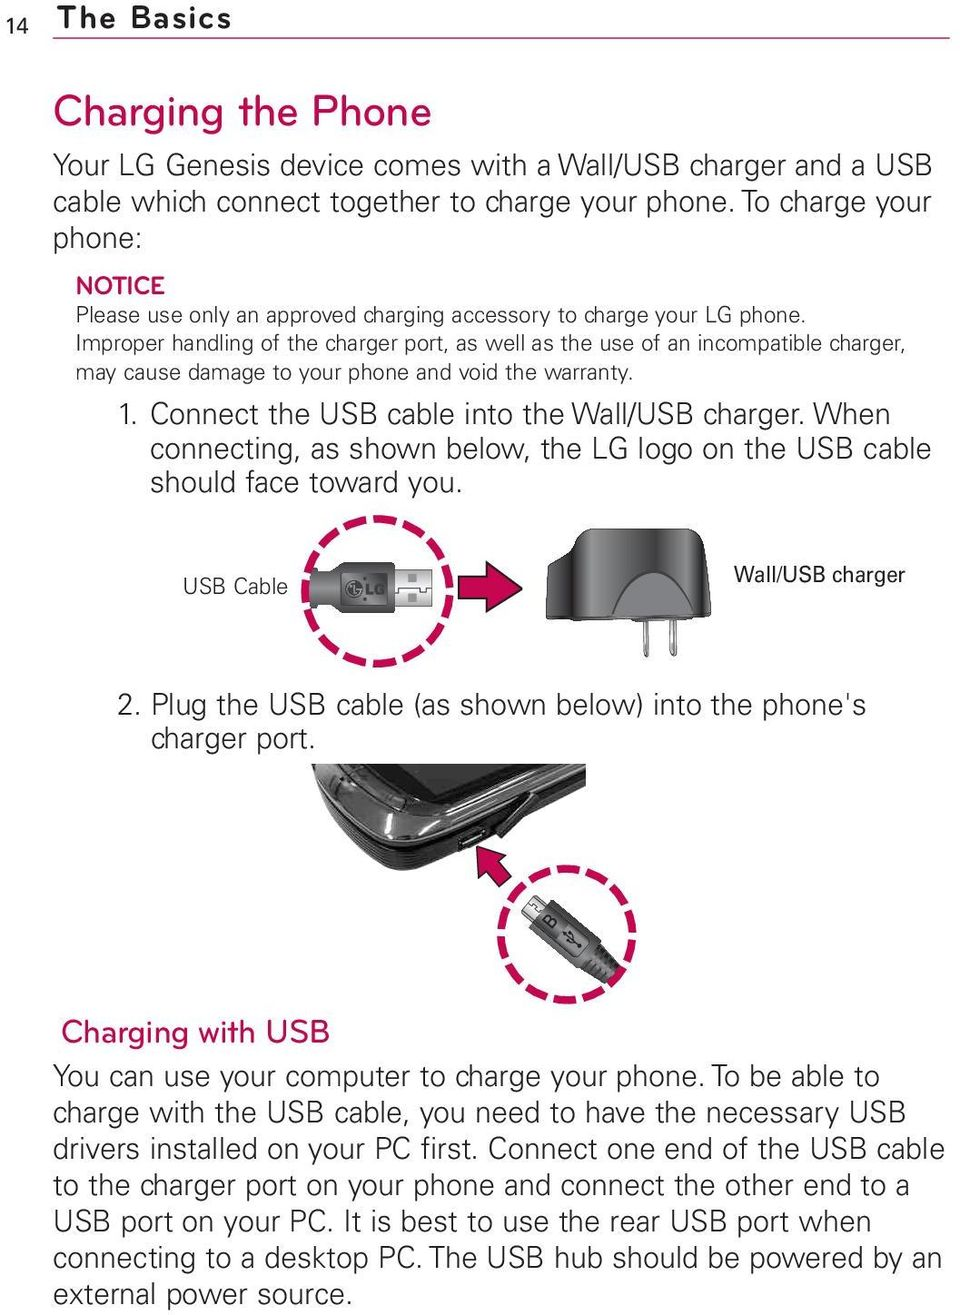 Improper handling of the charger port, as well as the use of an incompatible charger, may cause damage to your phone and void the warranty. 1. Connect the USB cable into the Wall/USB charger.